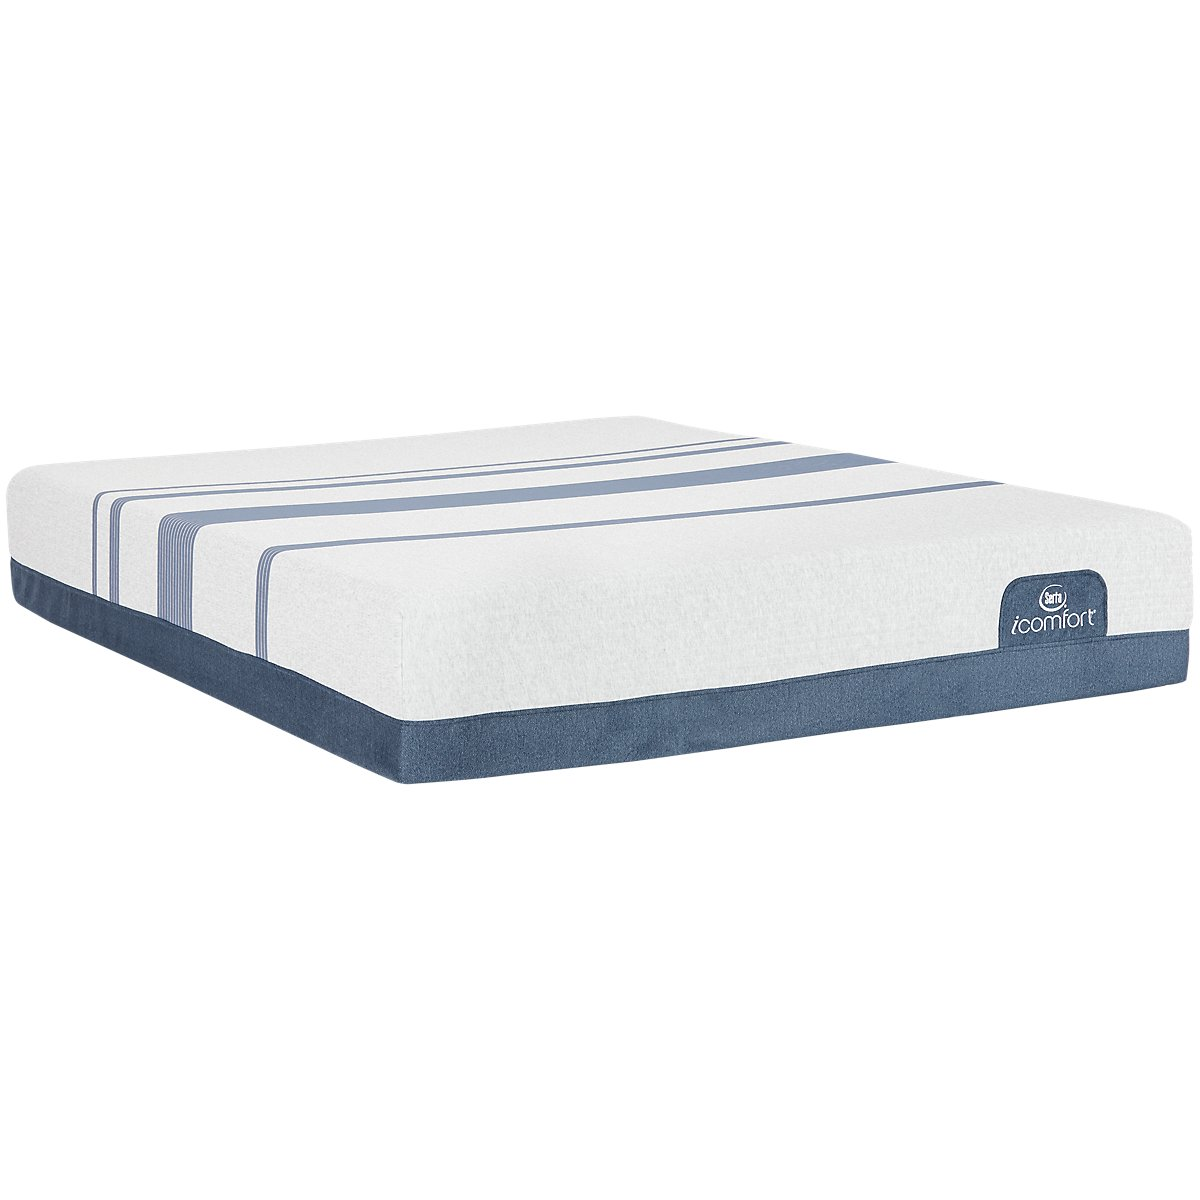 Ghostbed Mattress Review Supernaturally Comfortable